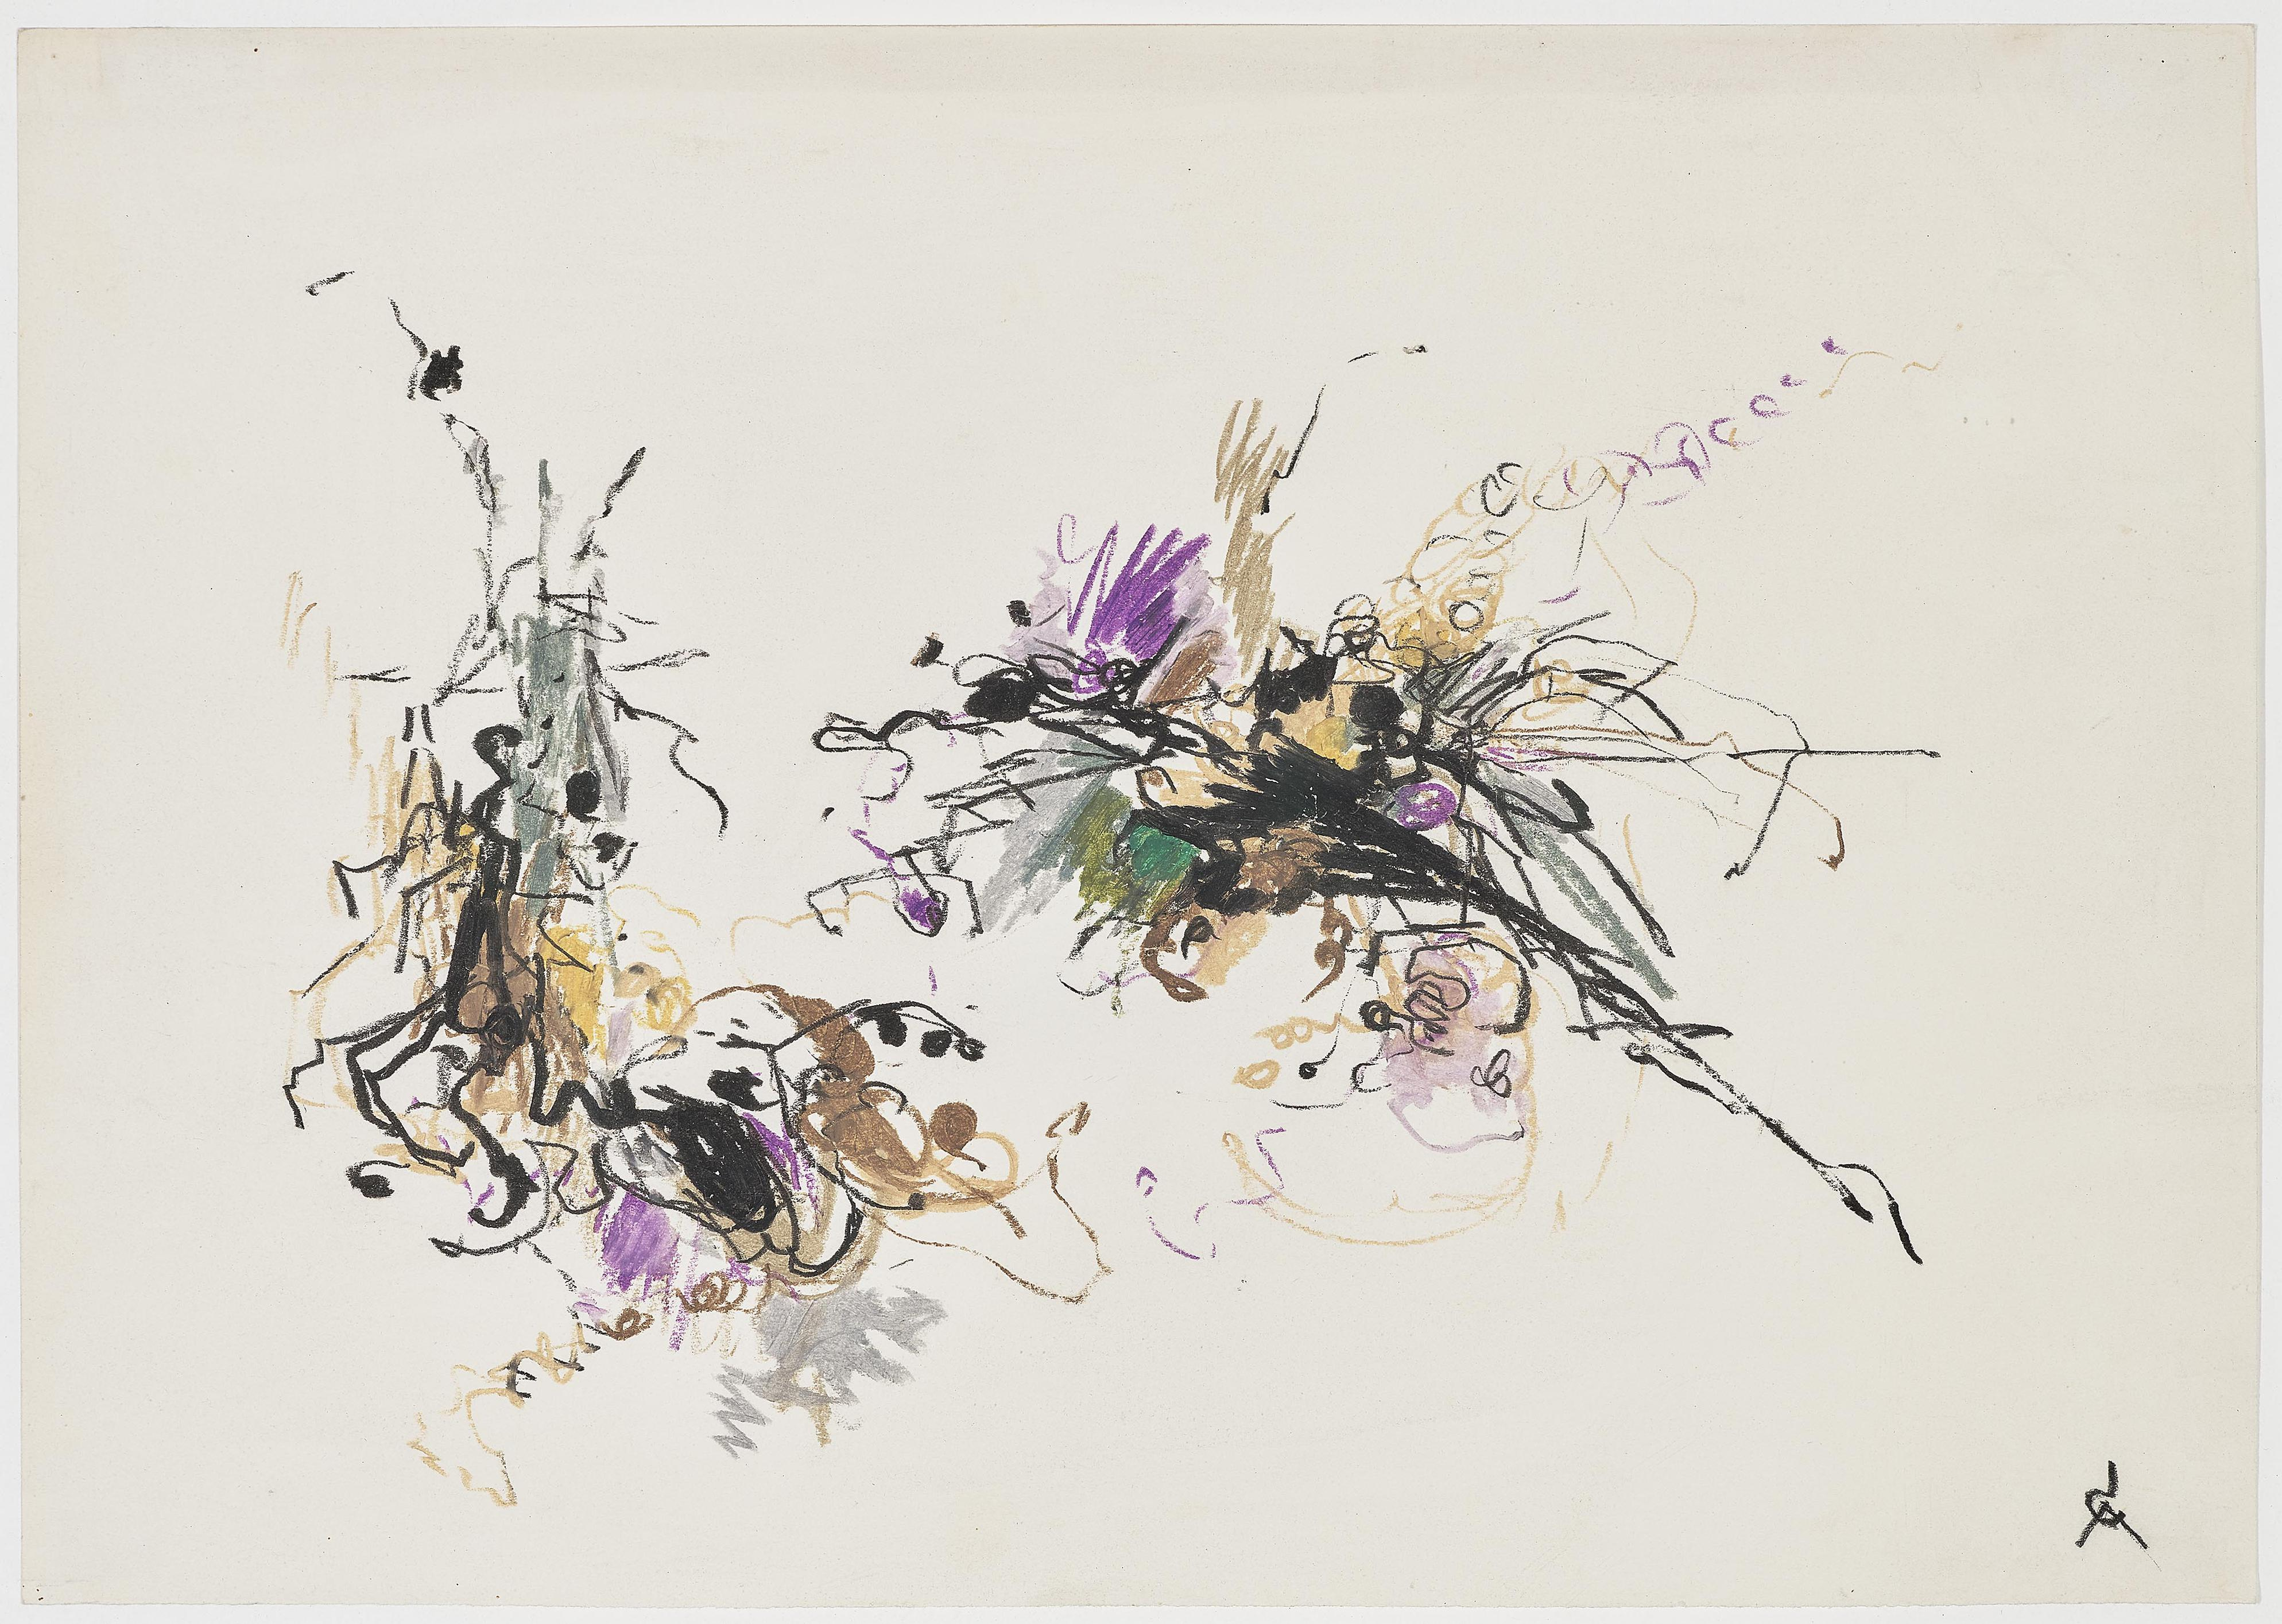 Rolf Cavael - O.T, 2 drawings-1967